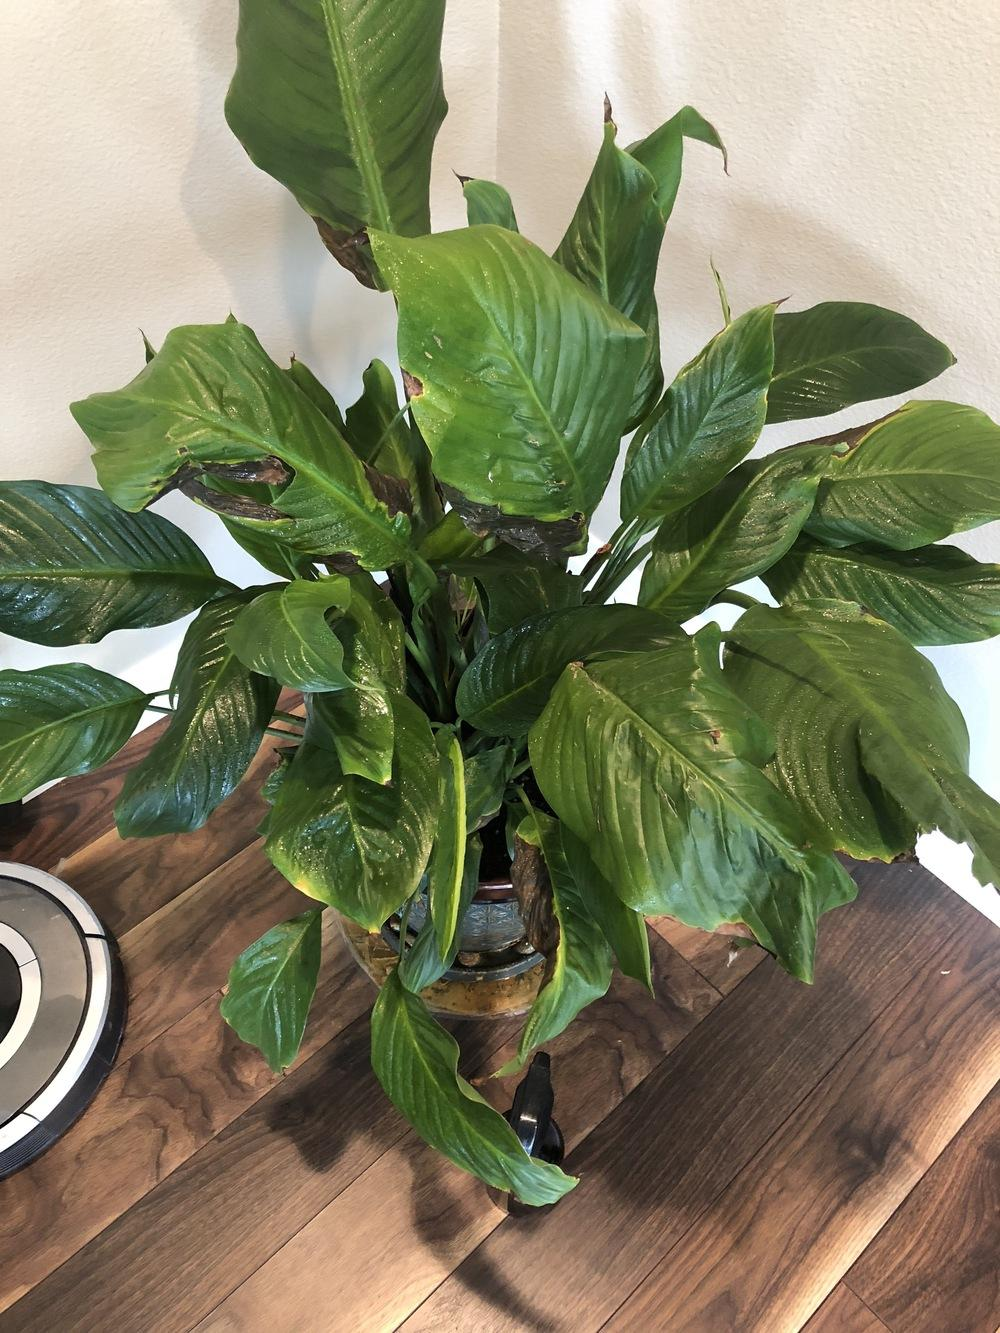 Ask a question forum please help my peace lily leaves turn brown thumb of 2018 06 04celestialanglzdb1b68 izmirmasajfo